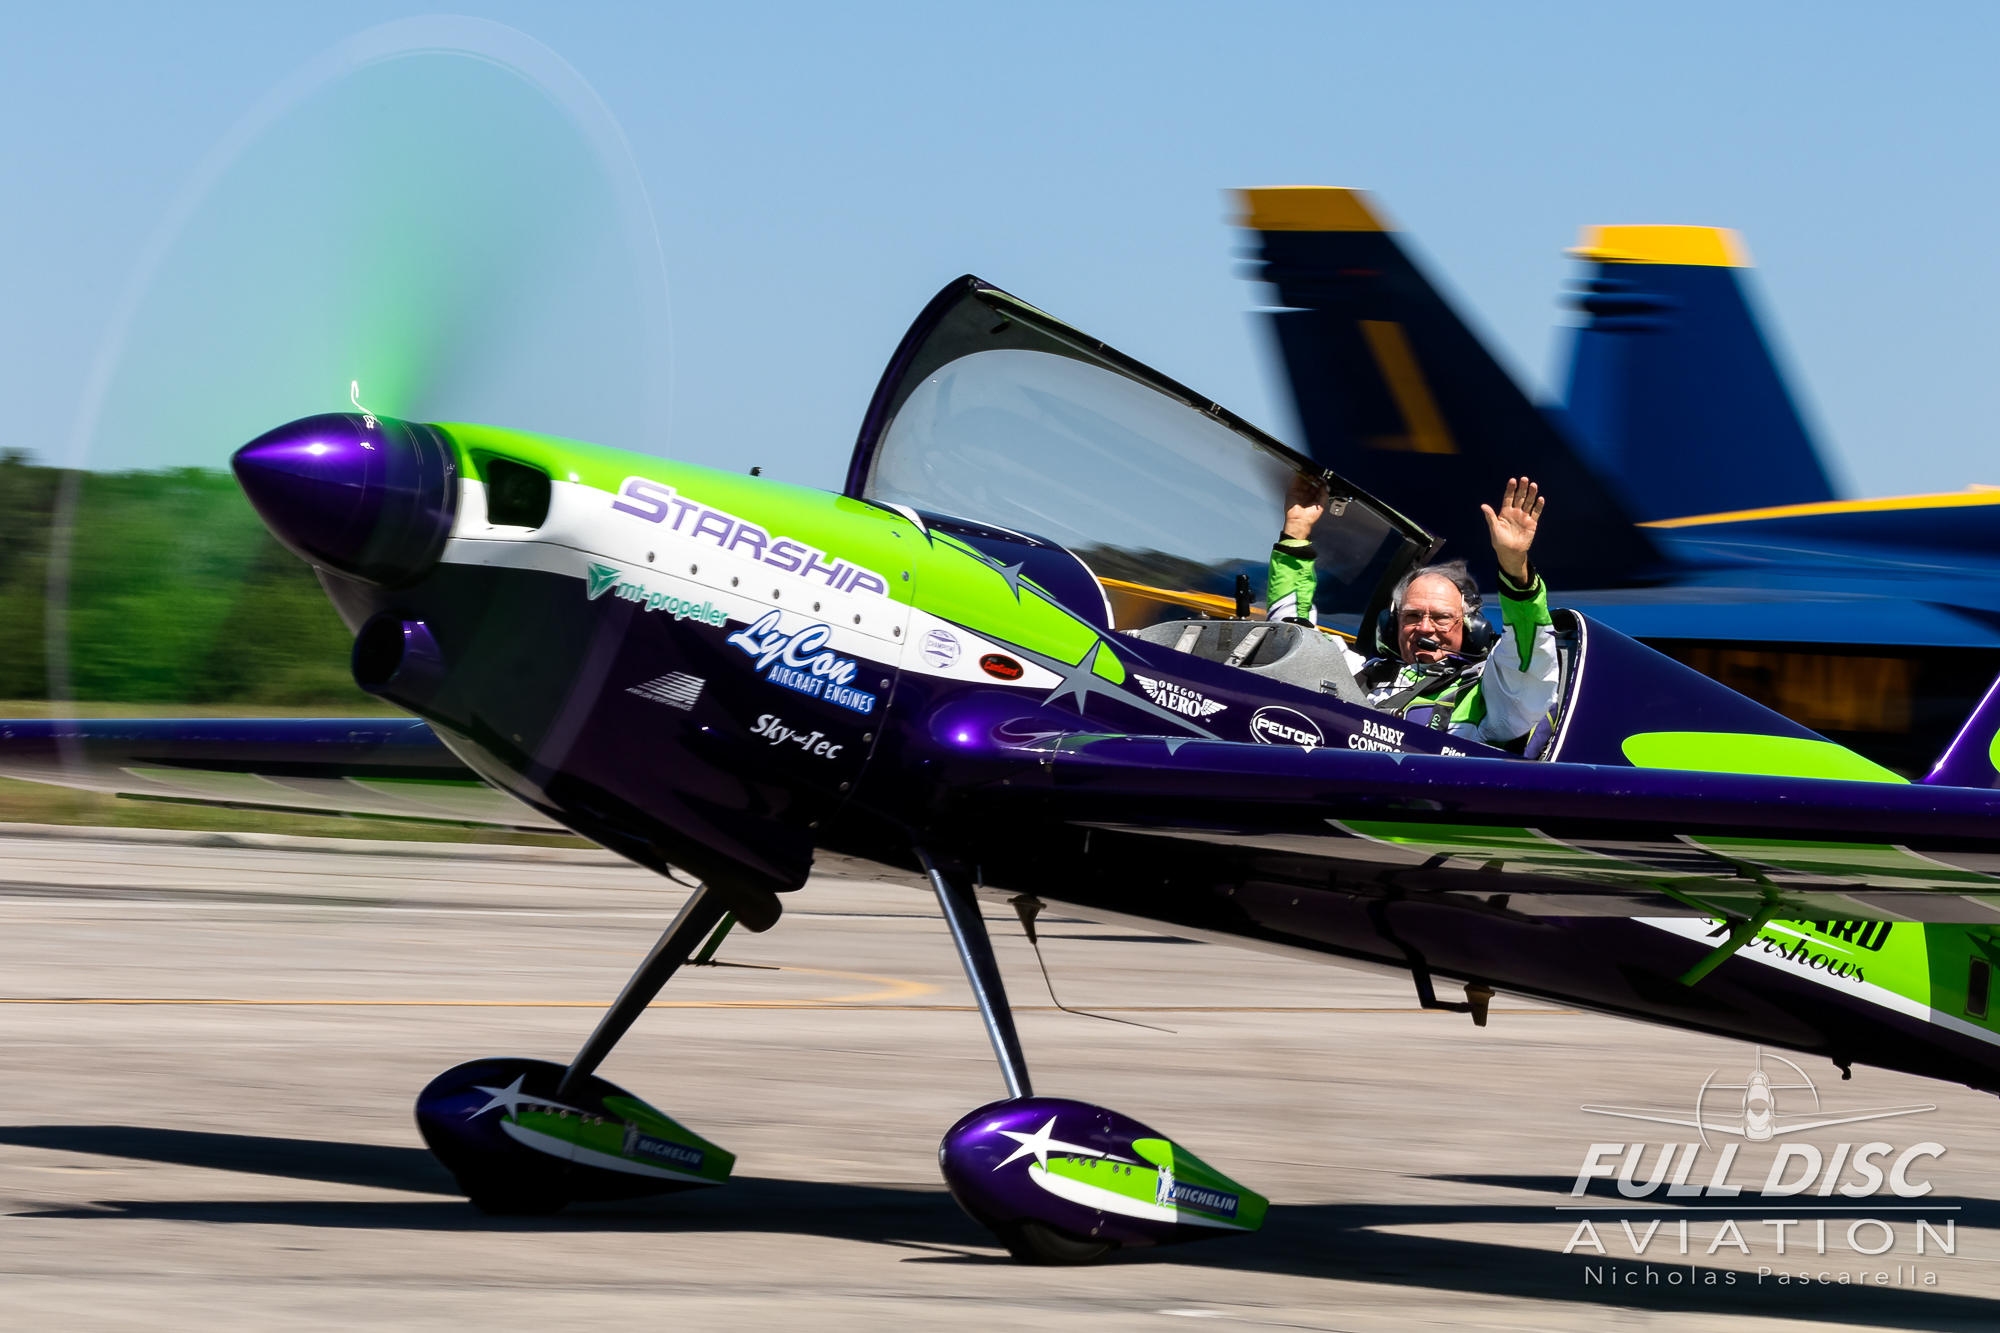 garyward_taxi_nicholaspascarella_fulldiscavation_aviation_airshow.jpg